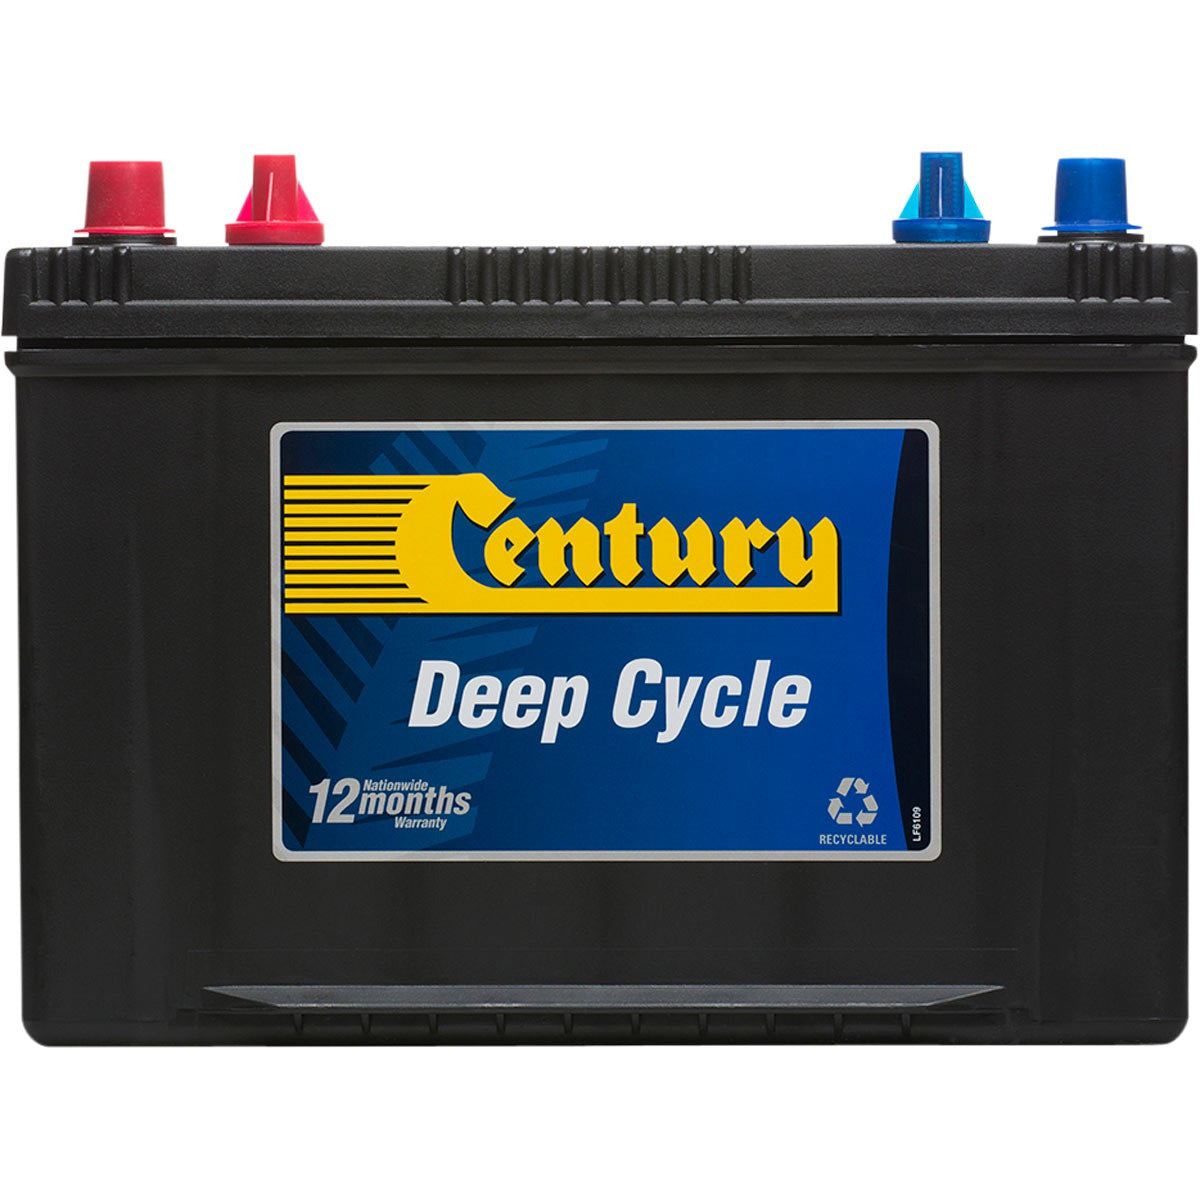 Century Deep Cycle Battery 27DC 12v 96Ah